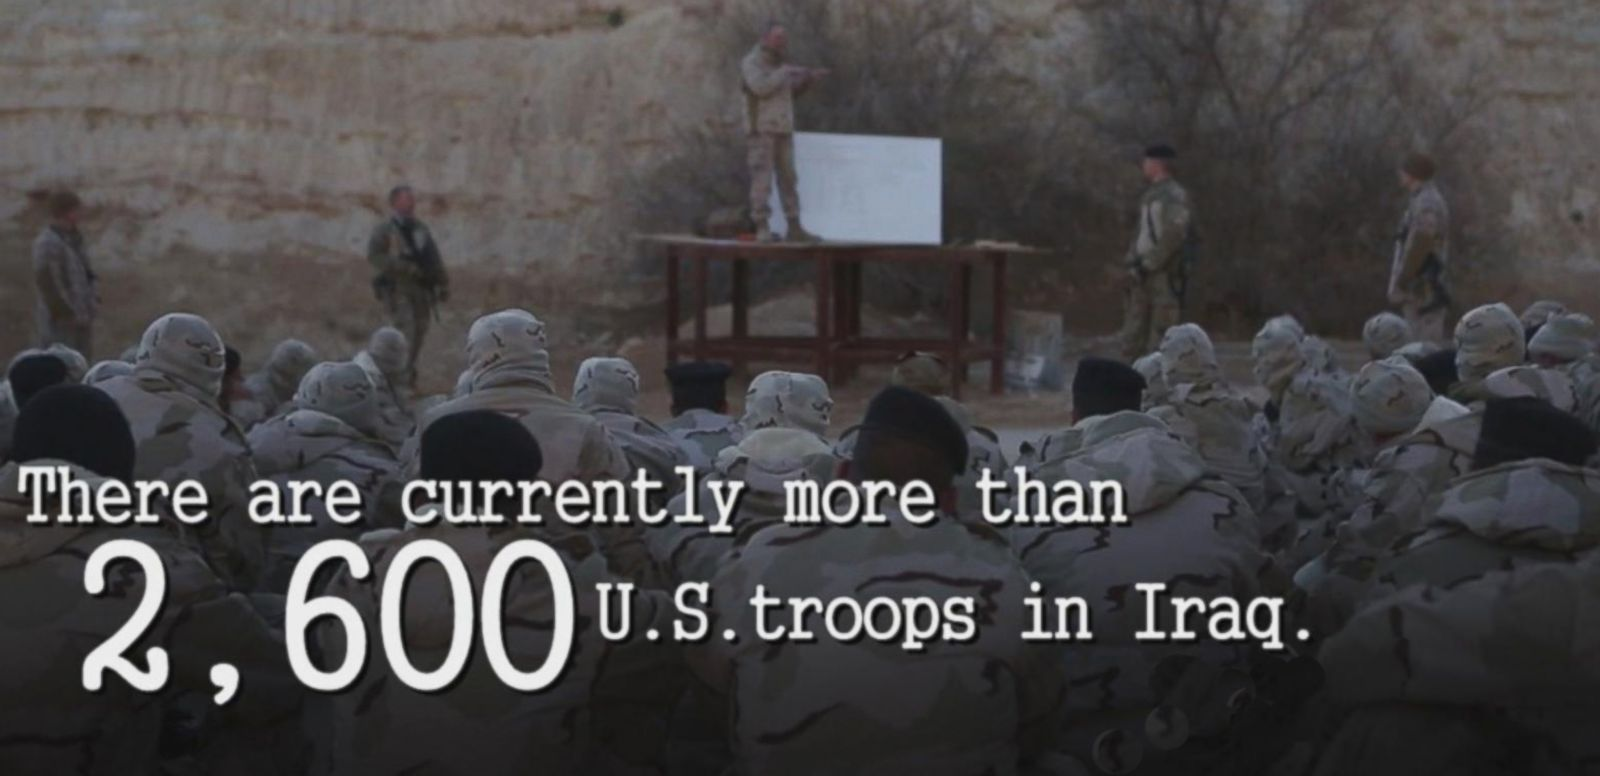 VIDEO: ISIS In Iraq: The Numbers Behind The Threat